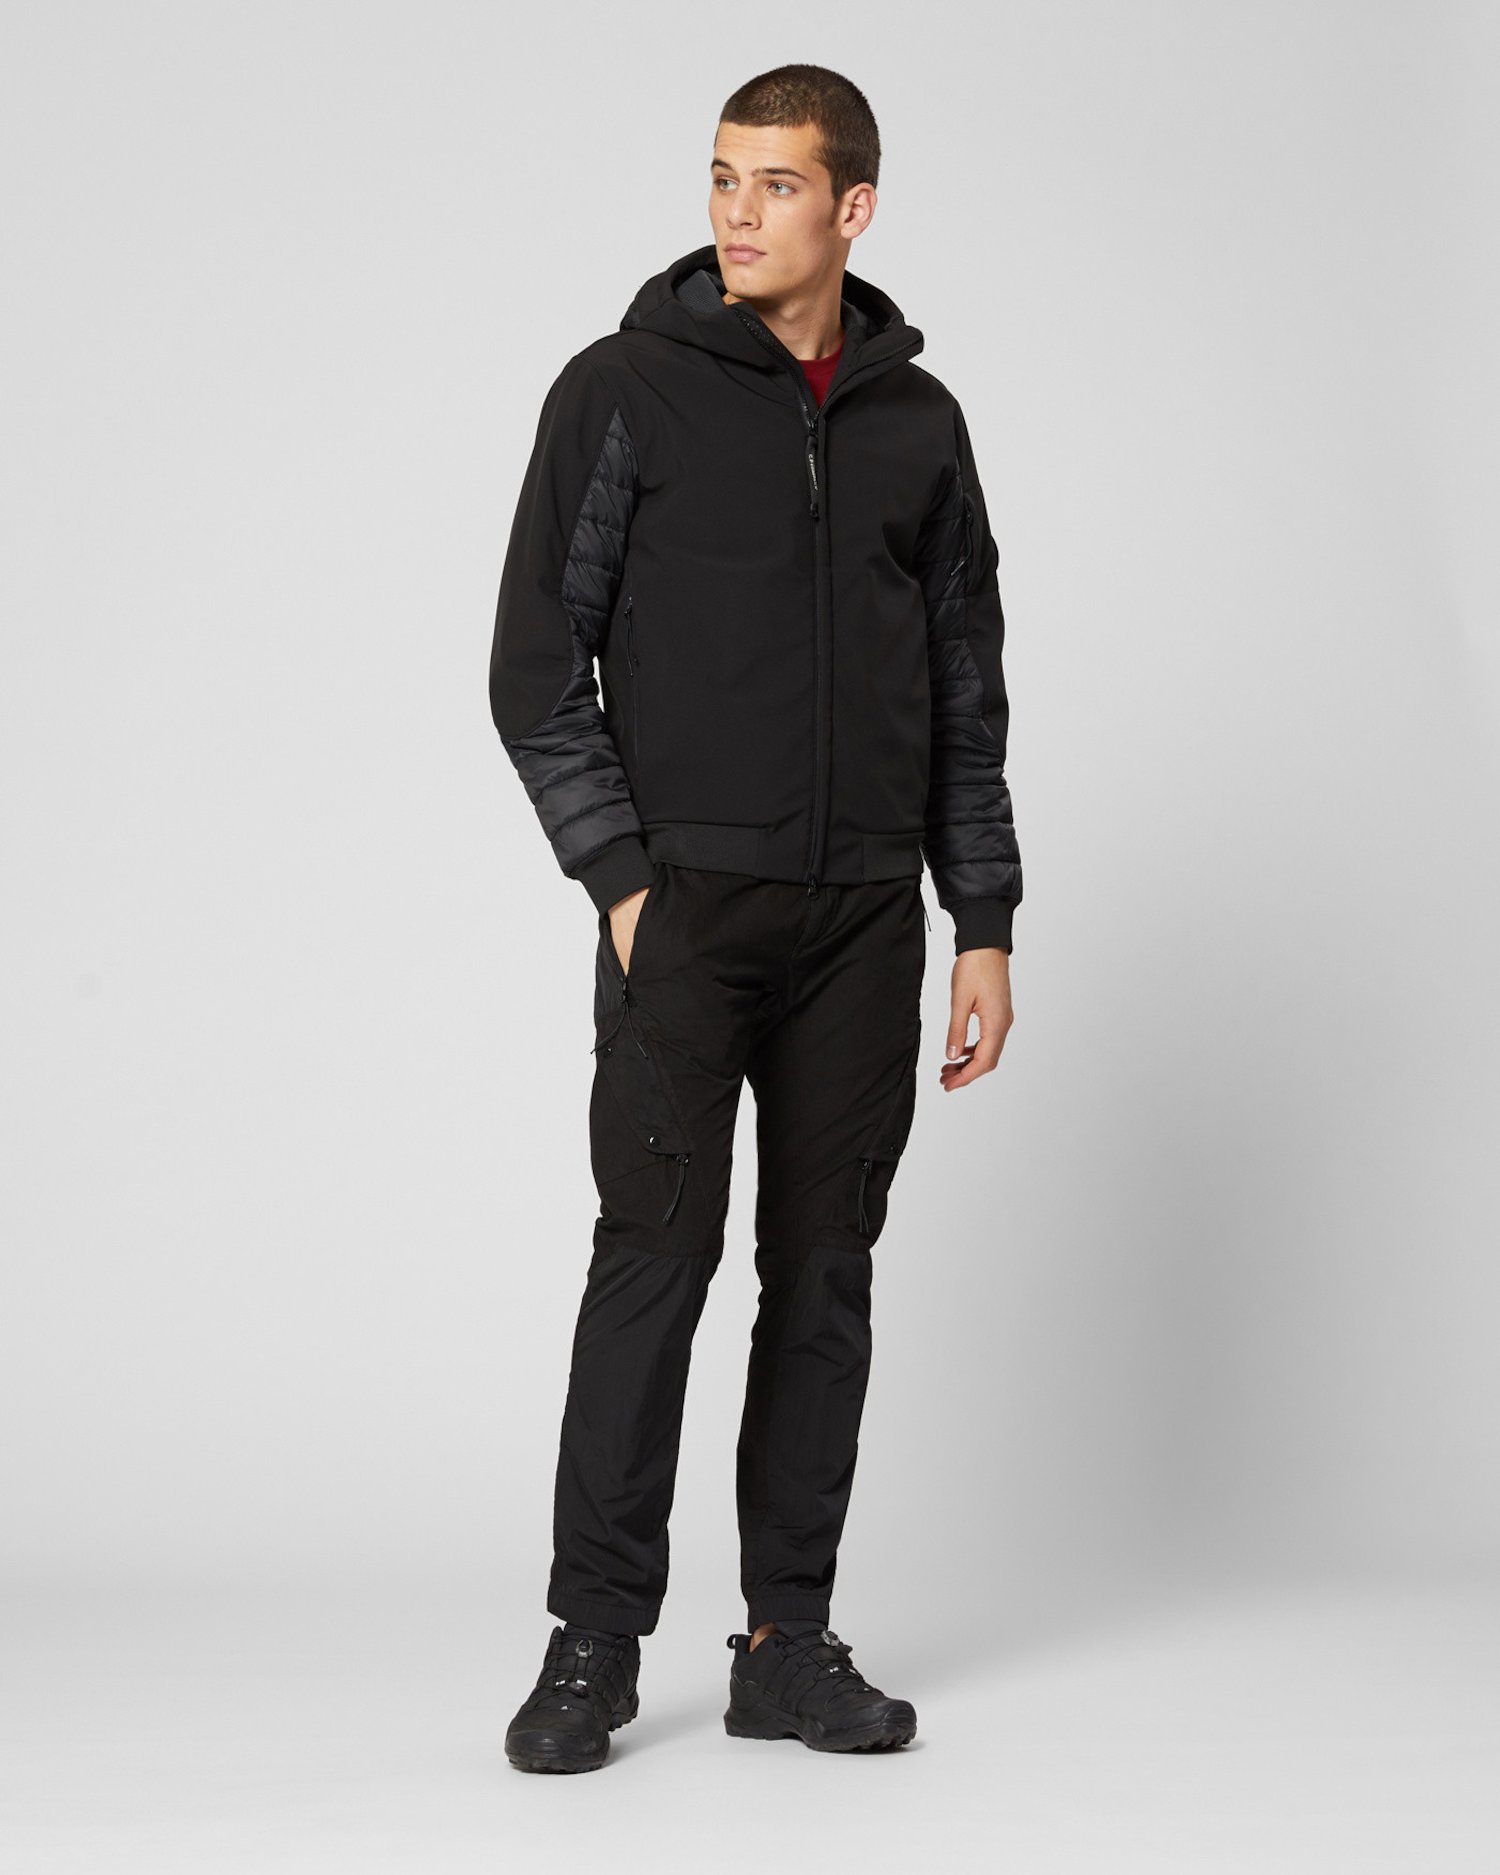 CP Shell Zip Front Lens Jacket